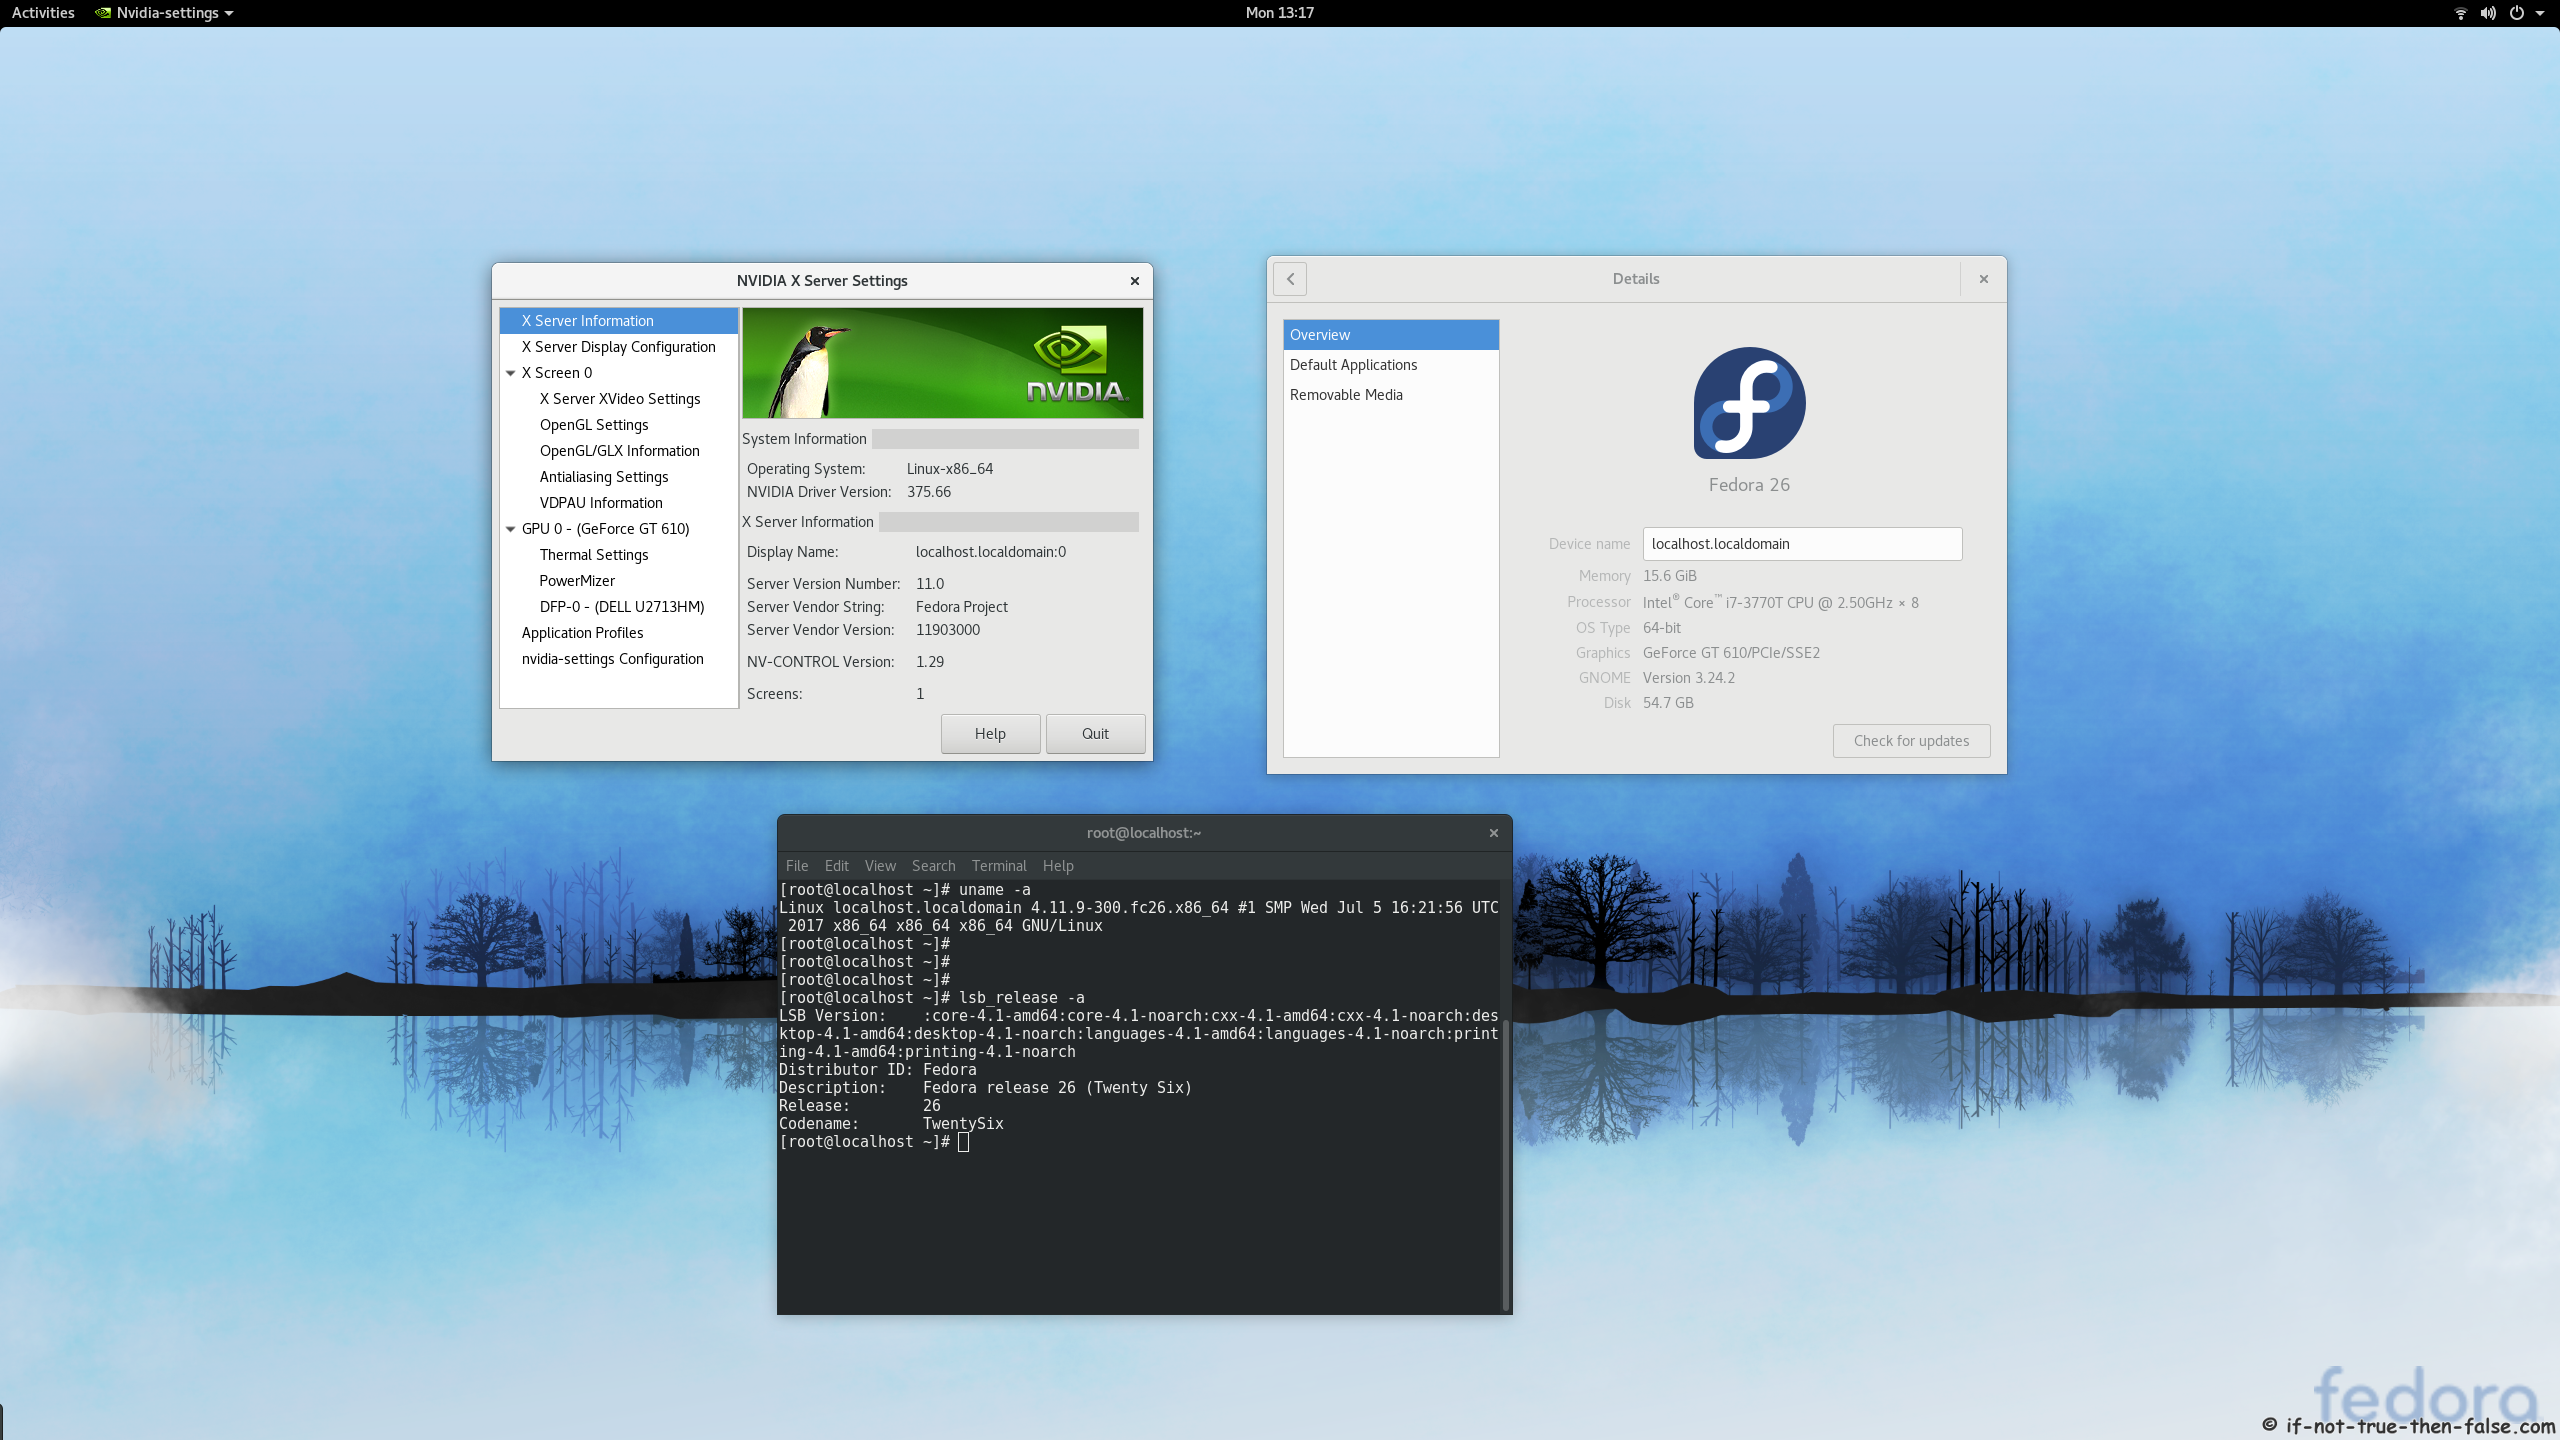 nVidia 375.66 drivers on Fedora 26 Gnome 3.24.2 Kernel 4.11